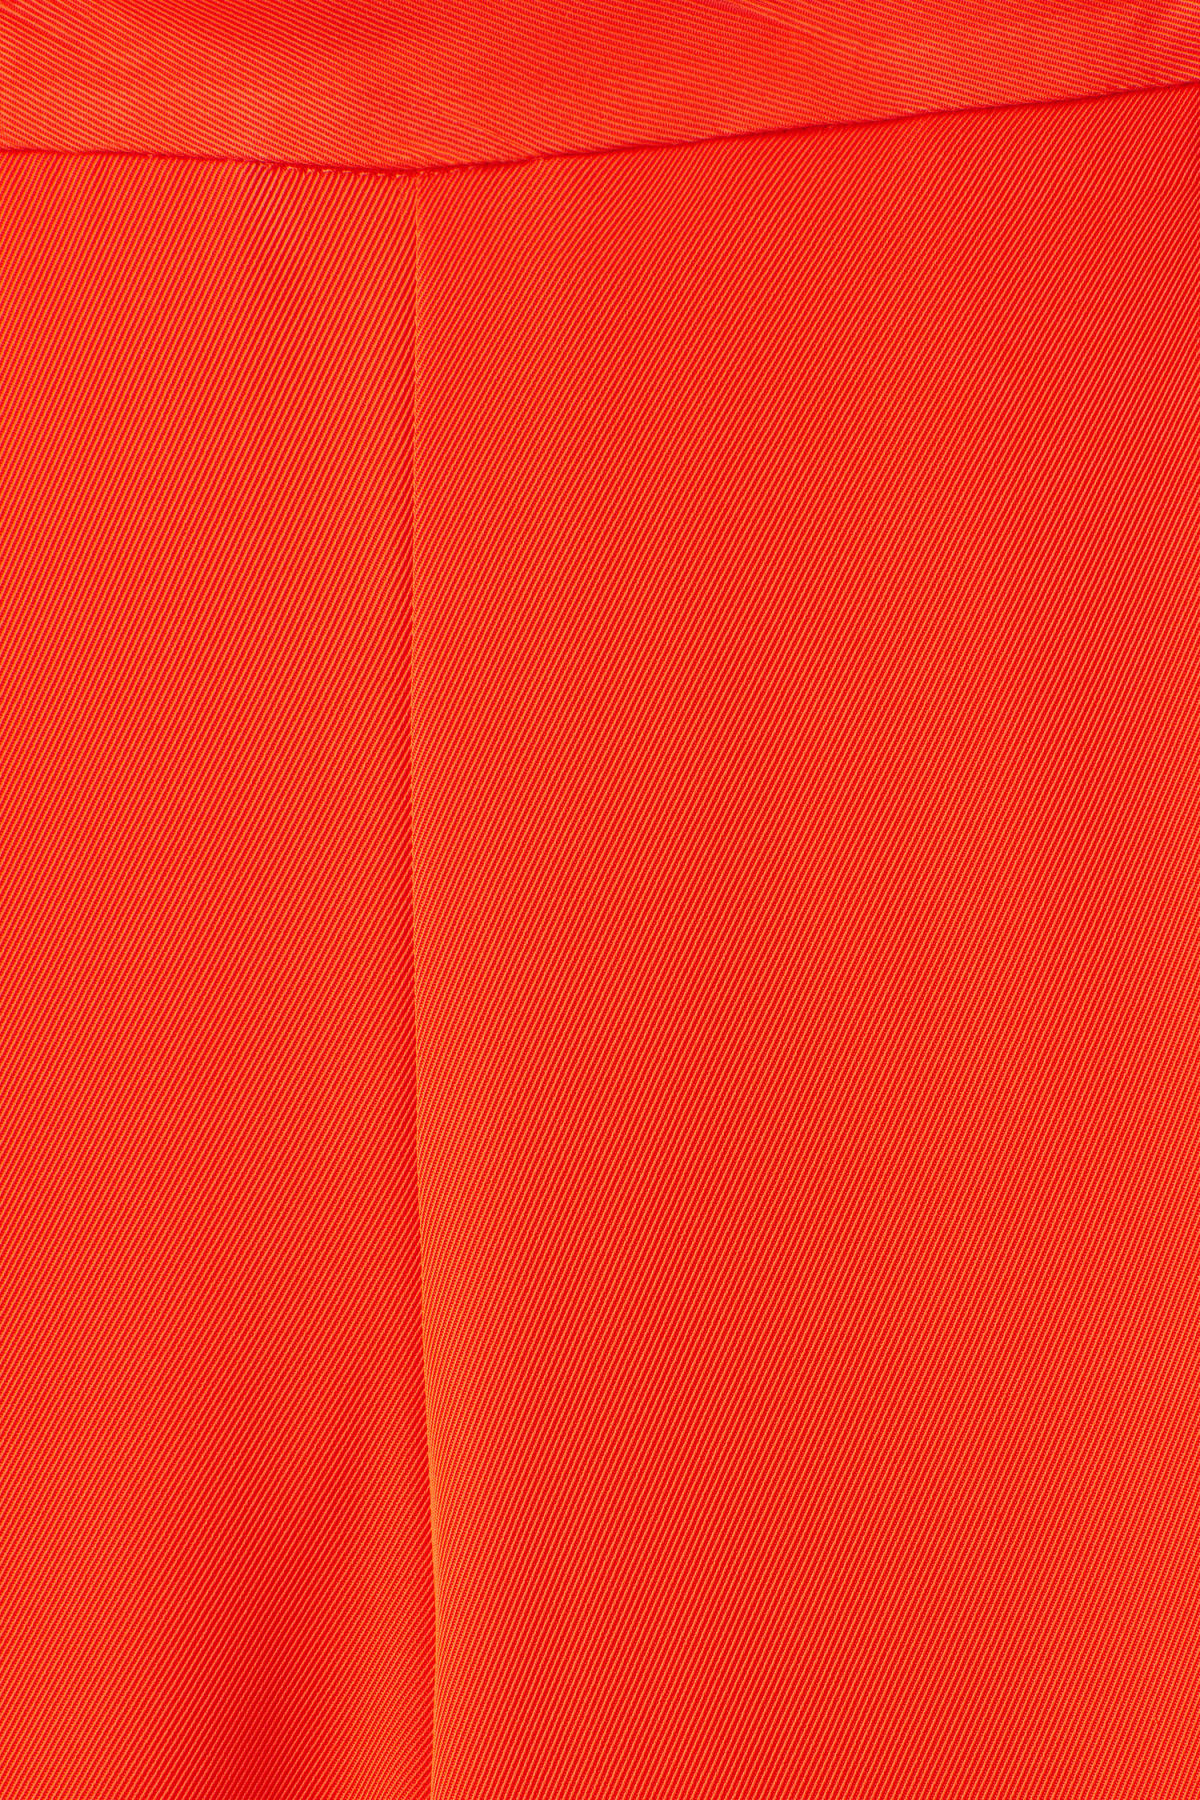 Detailed image of Weekday mount trousers in orange